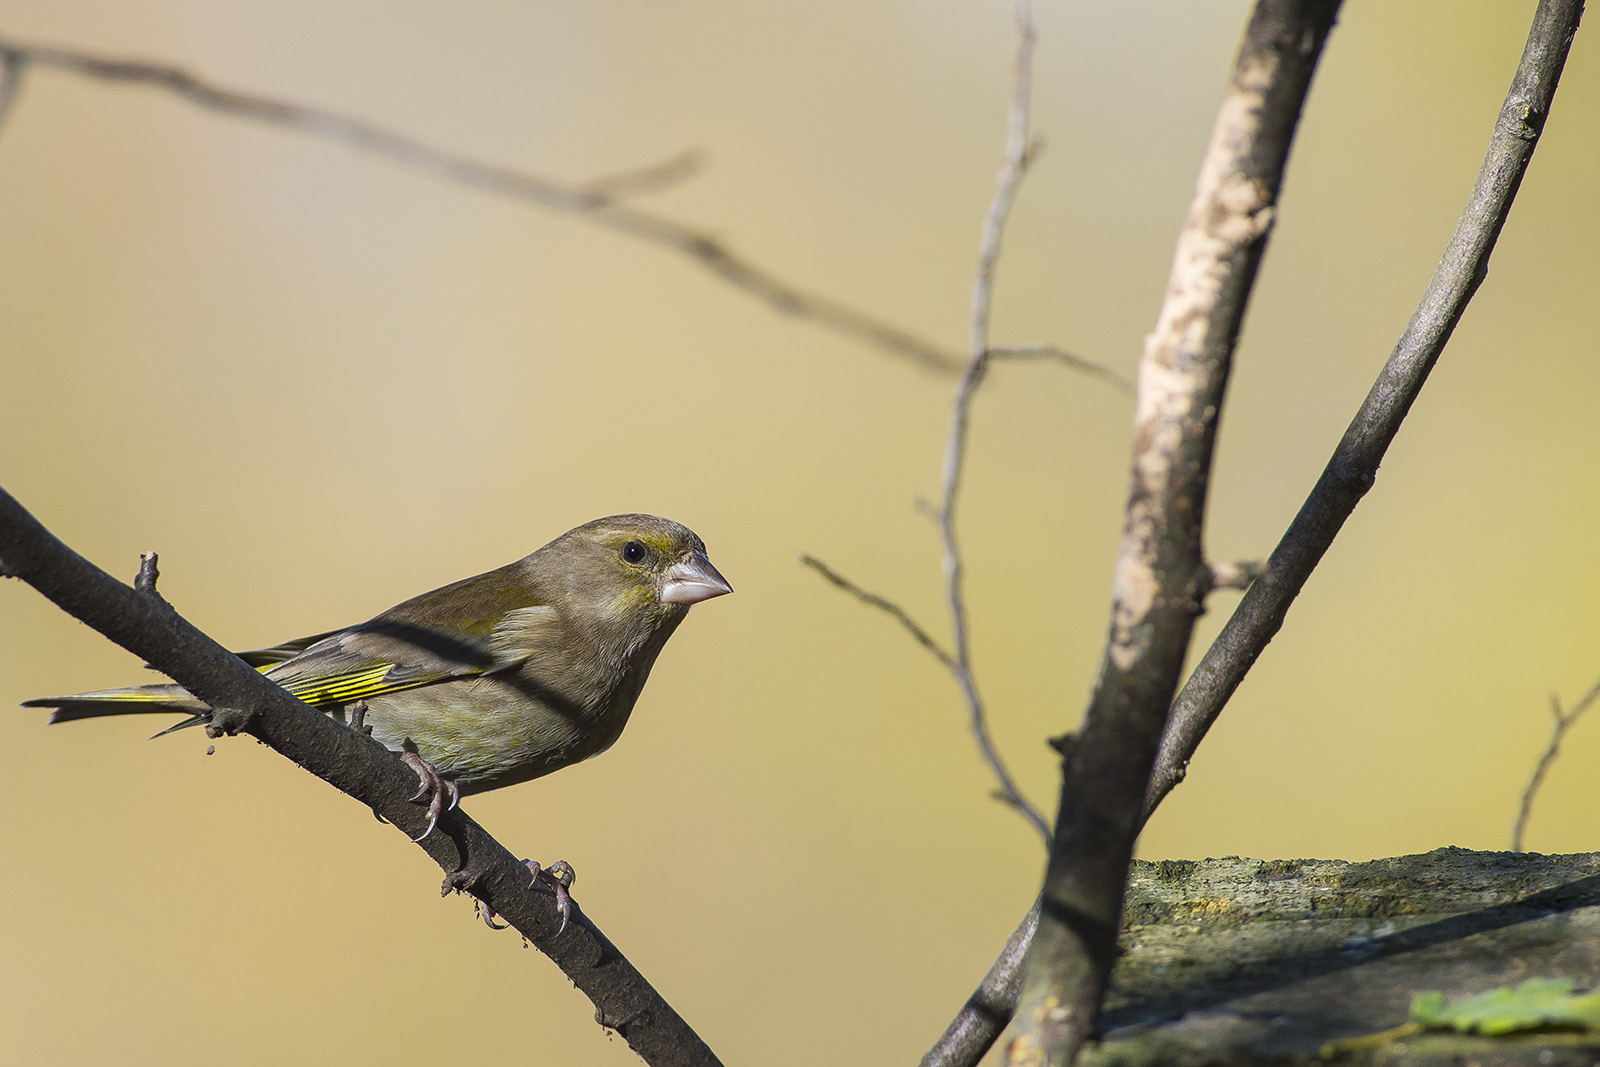 chloris chloris – verdone – greenfinch